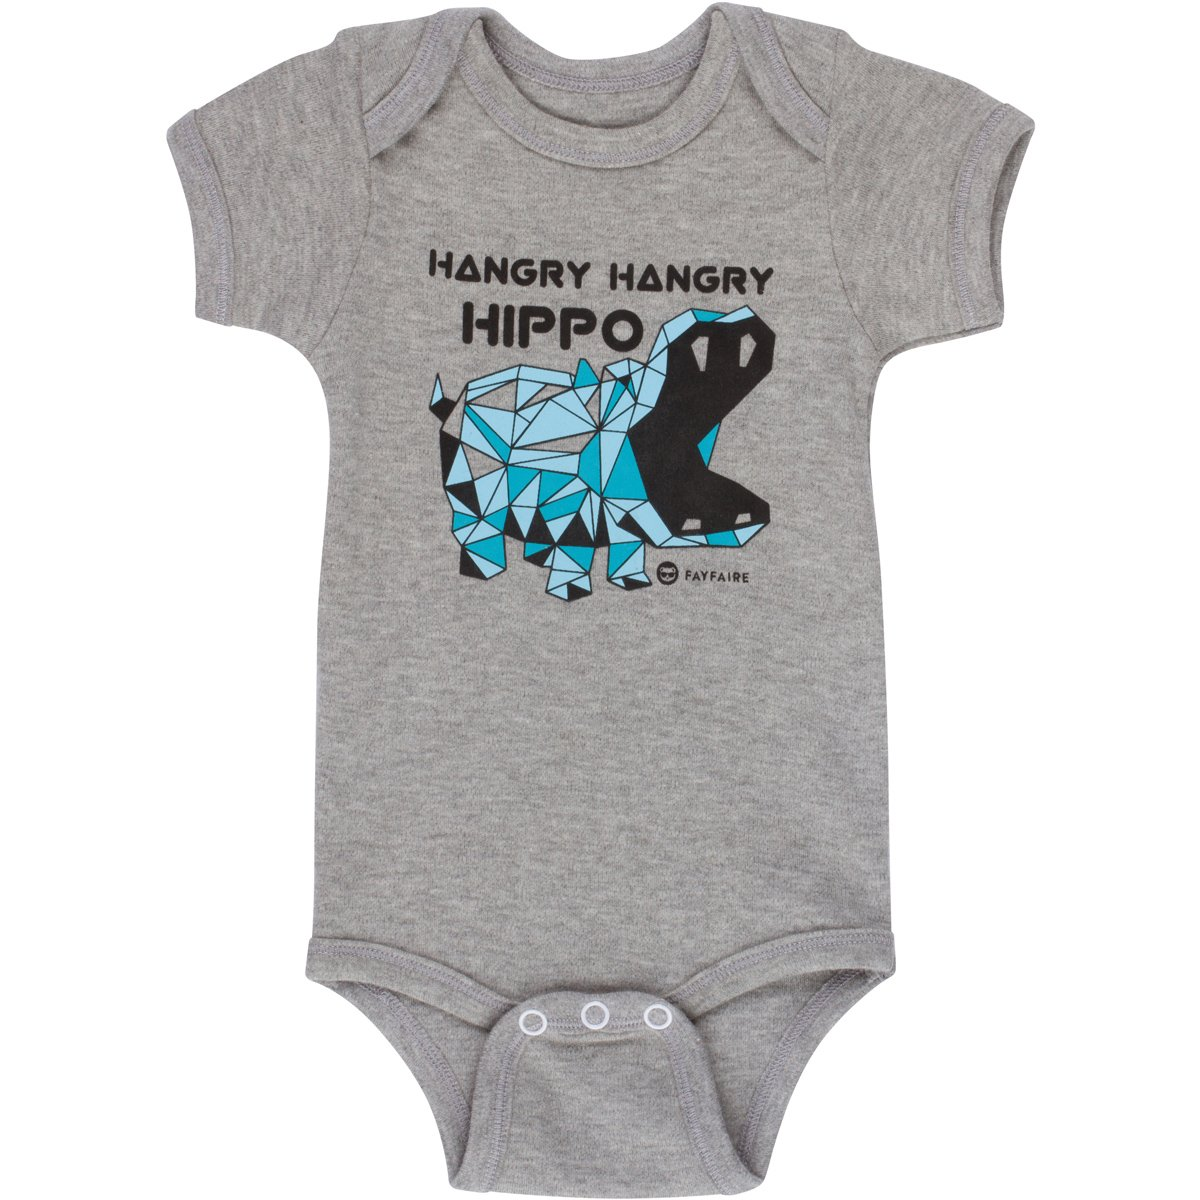 Unique Baby Gifts by Fayfaire Boutique   Extravagant Hangry Hangry Hippos NB-12M